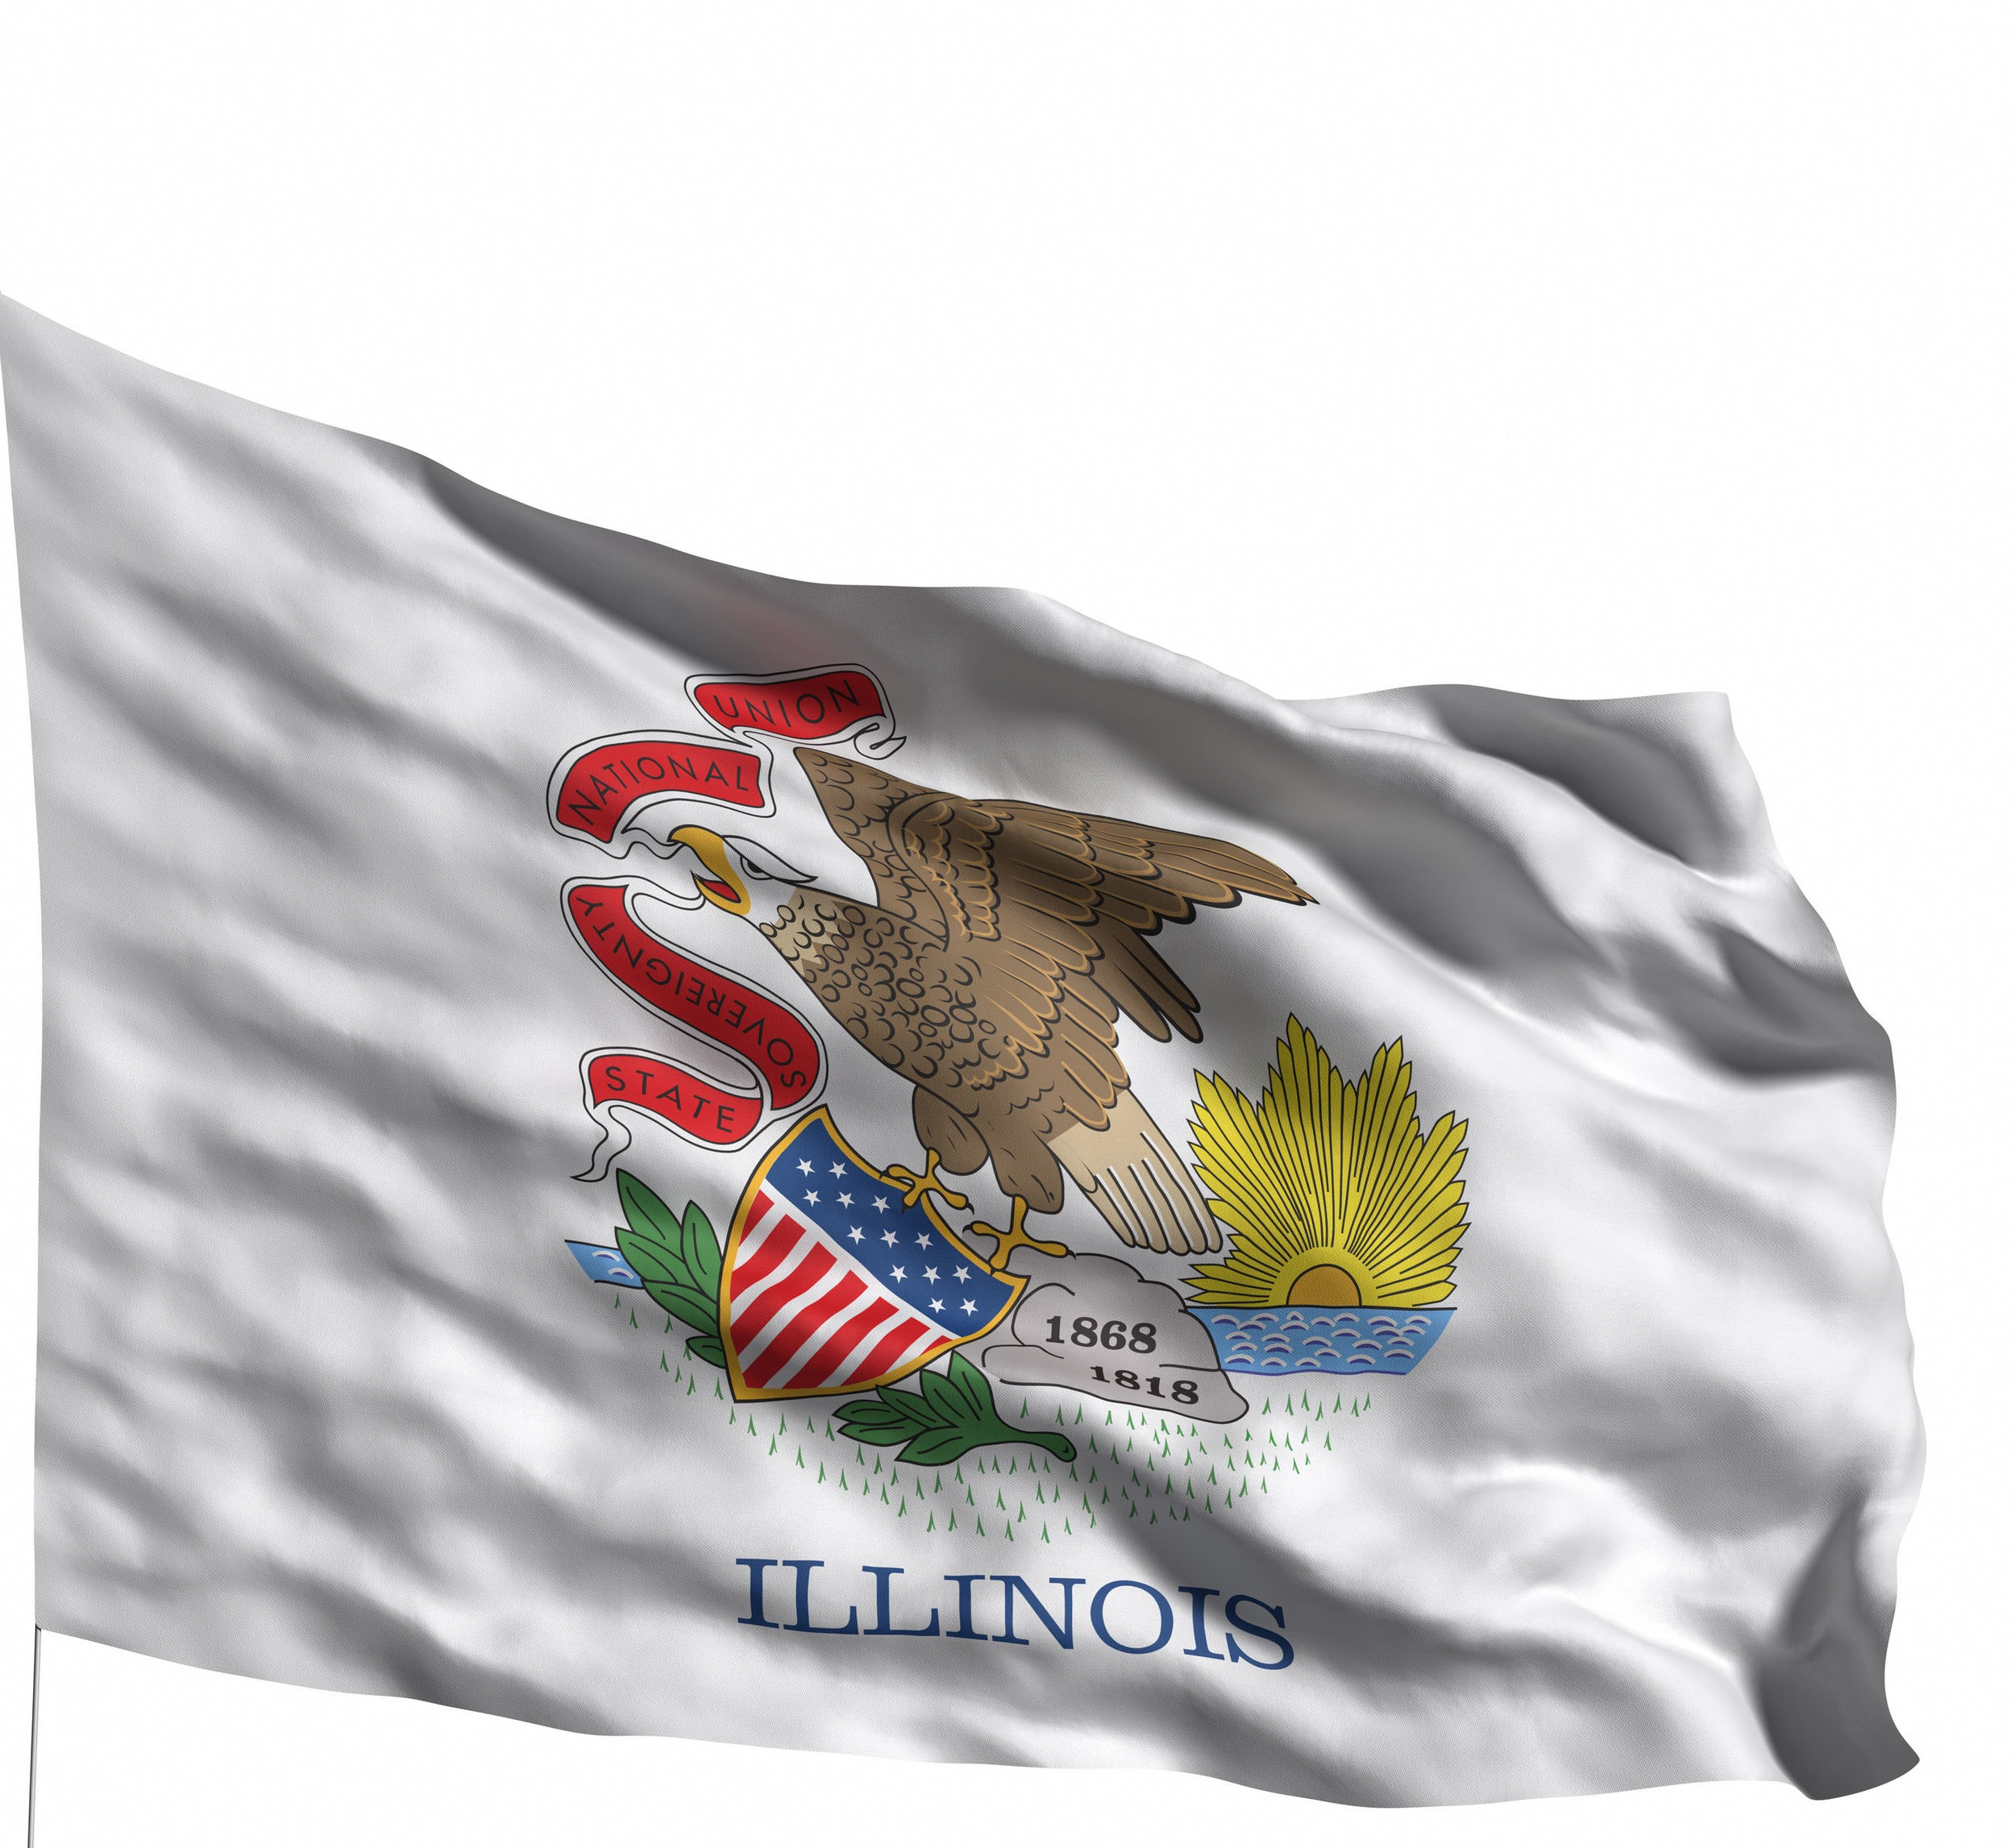 Illinois_Flag.jpg